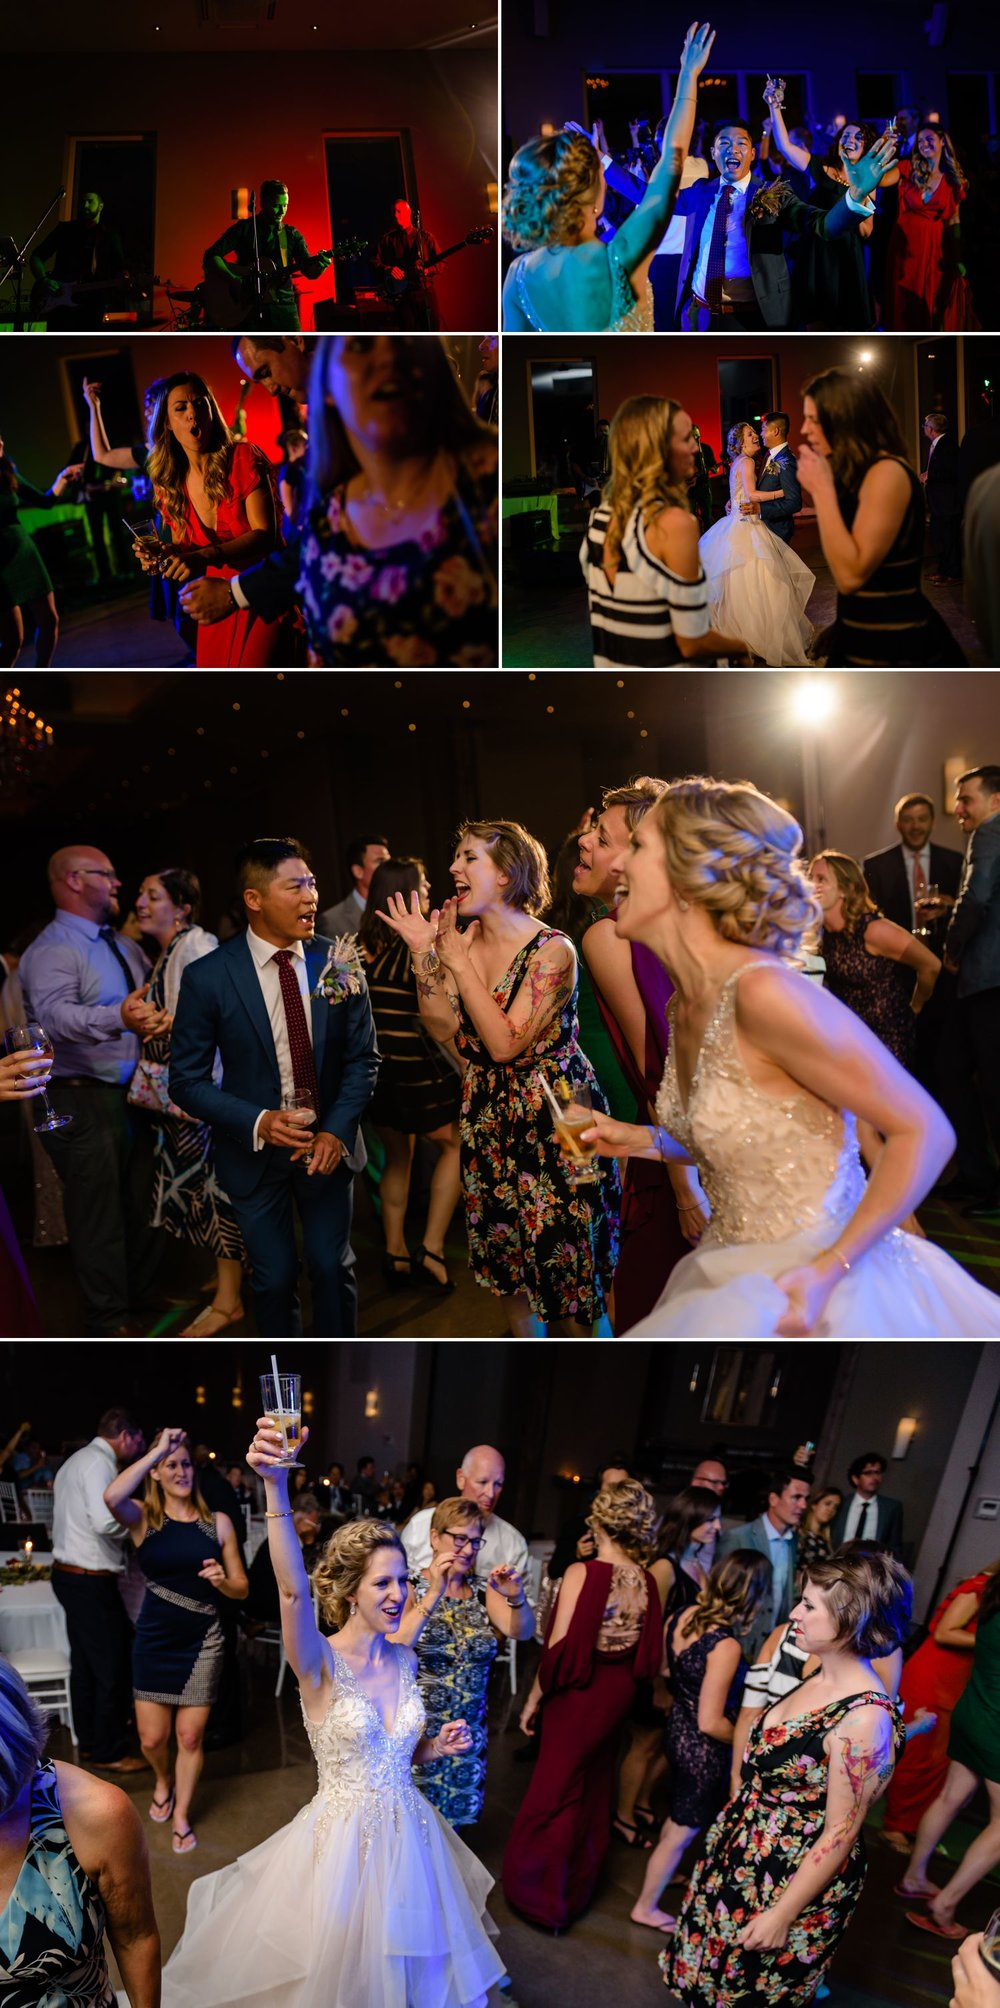 candid dance photos at a le belvedere wedding in wakefield quebec